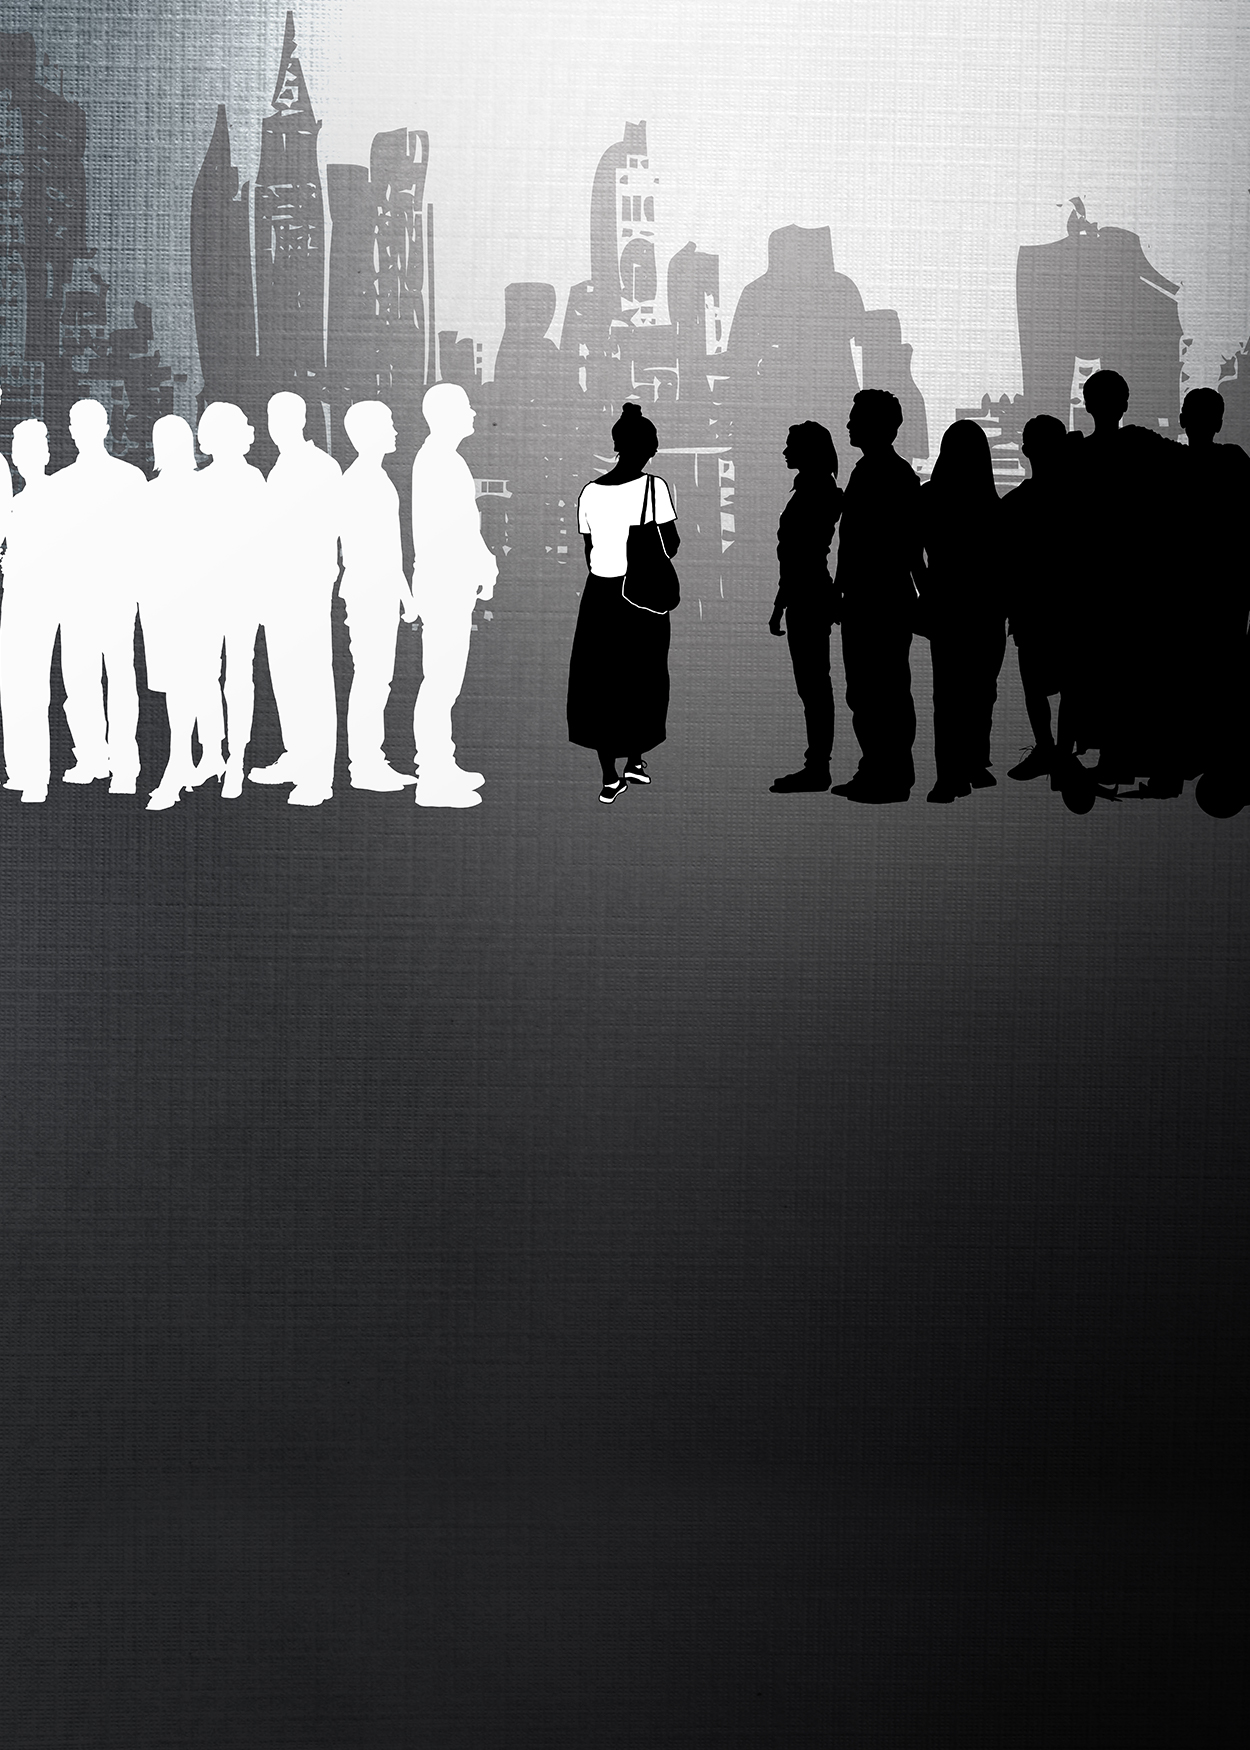 Key Art from Baton (2018). The silhouette of a city is in the background. The silhoutte of a woman, dressed in white and black, stands between two groups of silhoutted people- the group to the left is white, the group to the right is black.